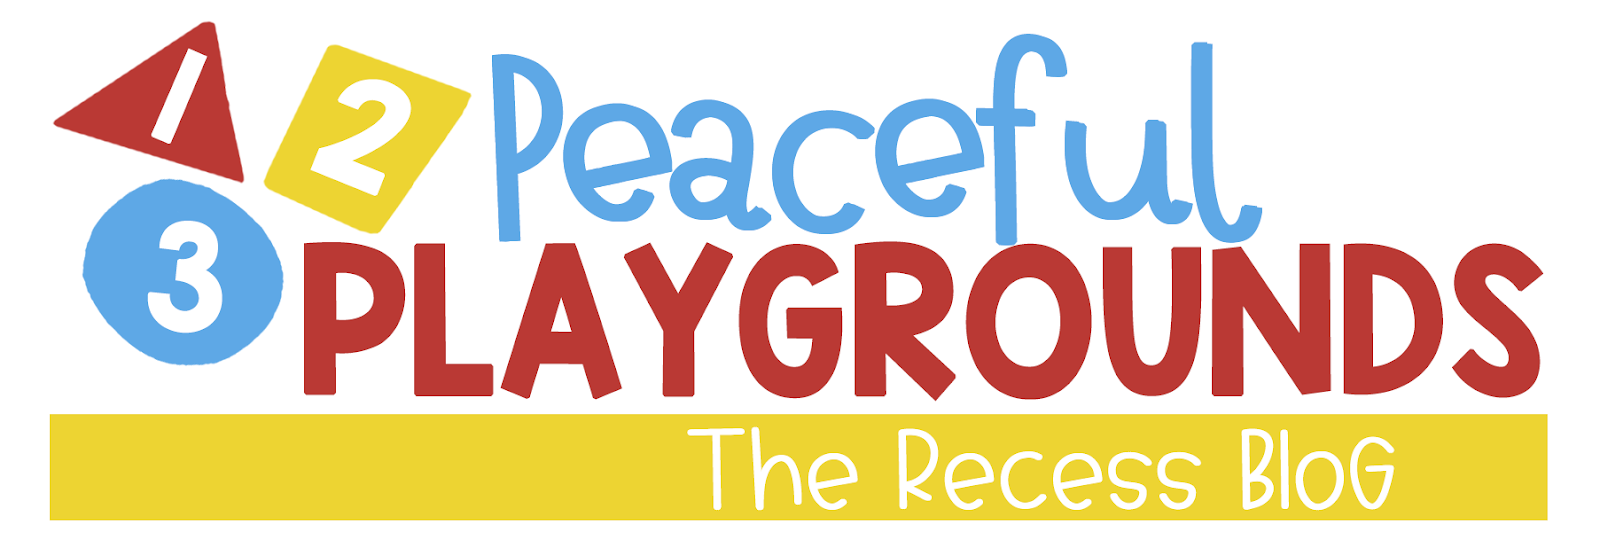 Peaceful Playgrounds | Recess Doctor Blog